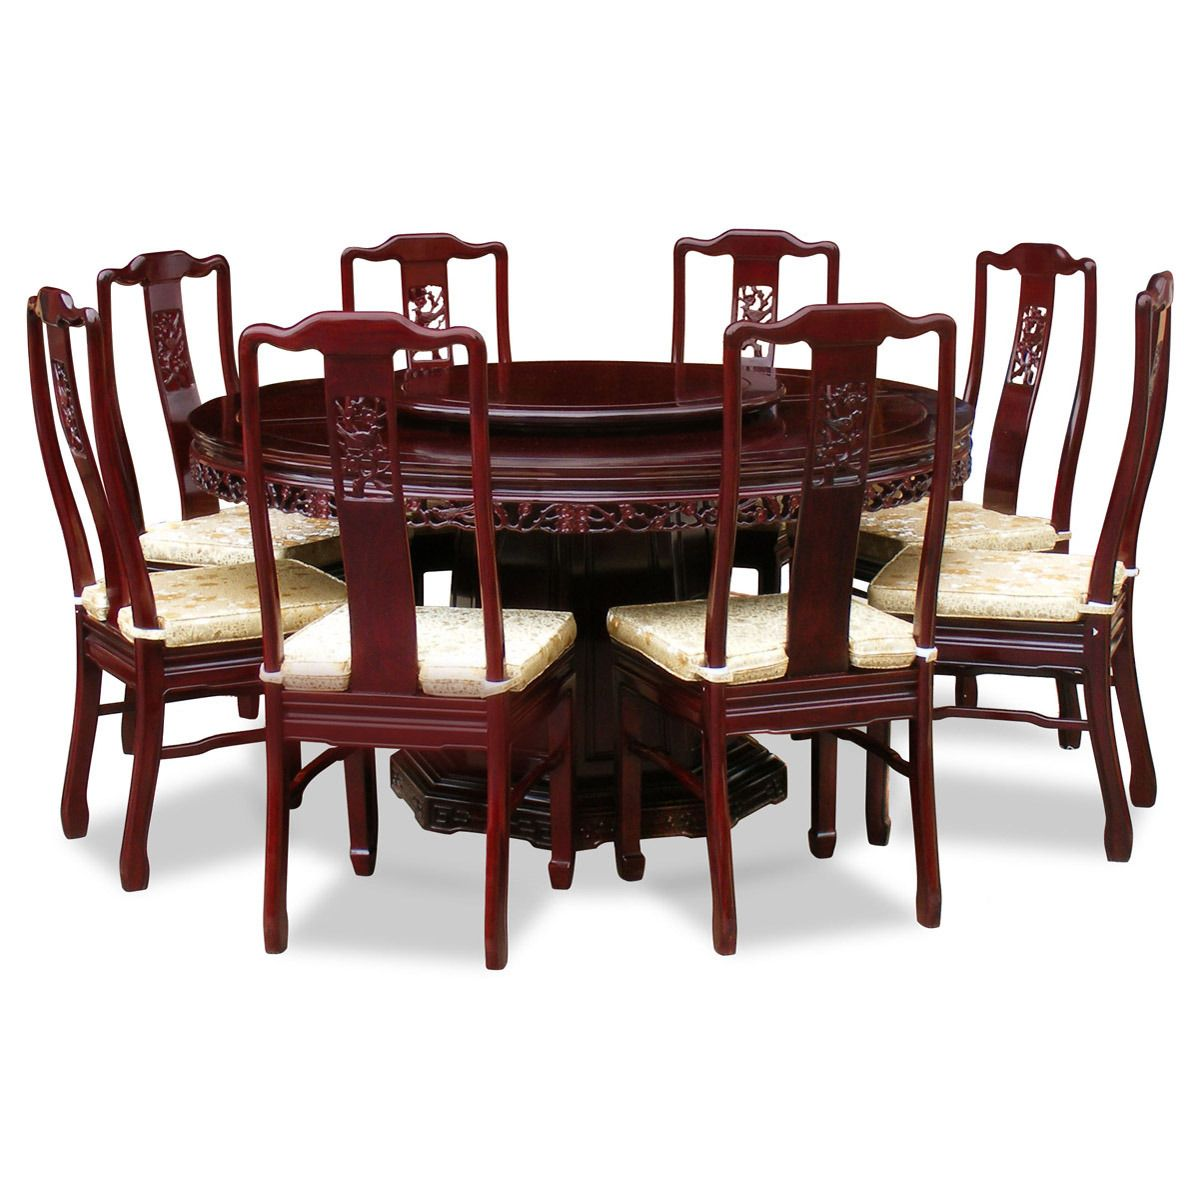 100 Chinese Round Dining Table  Cool Storage Furniture Check Classy End Chairs For Dining Room Decorating Inspiration